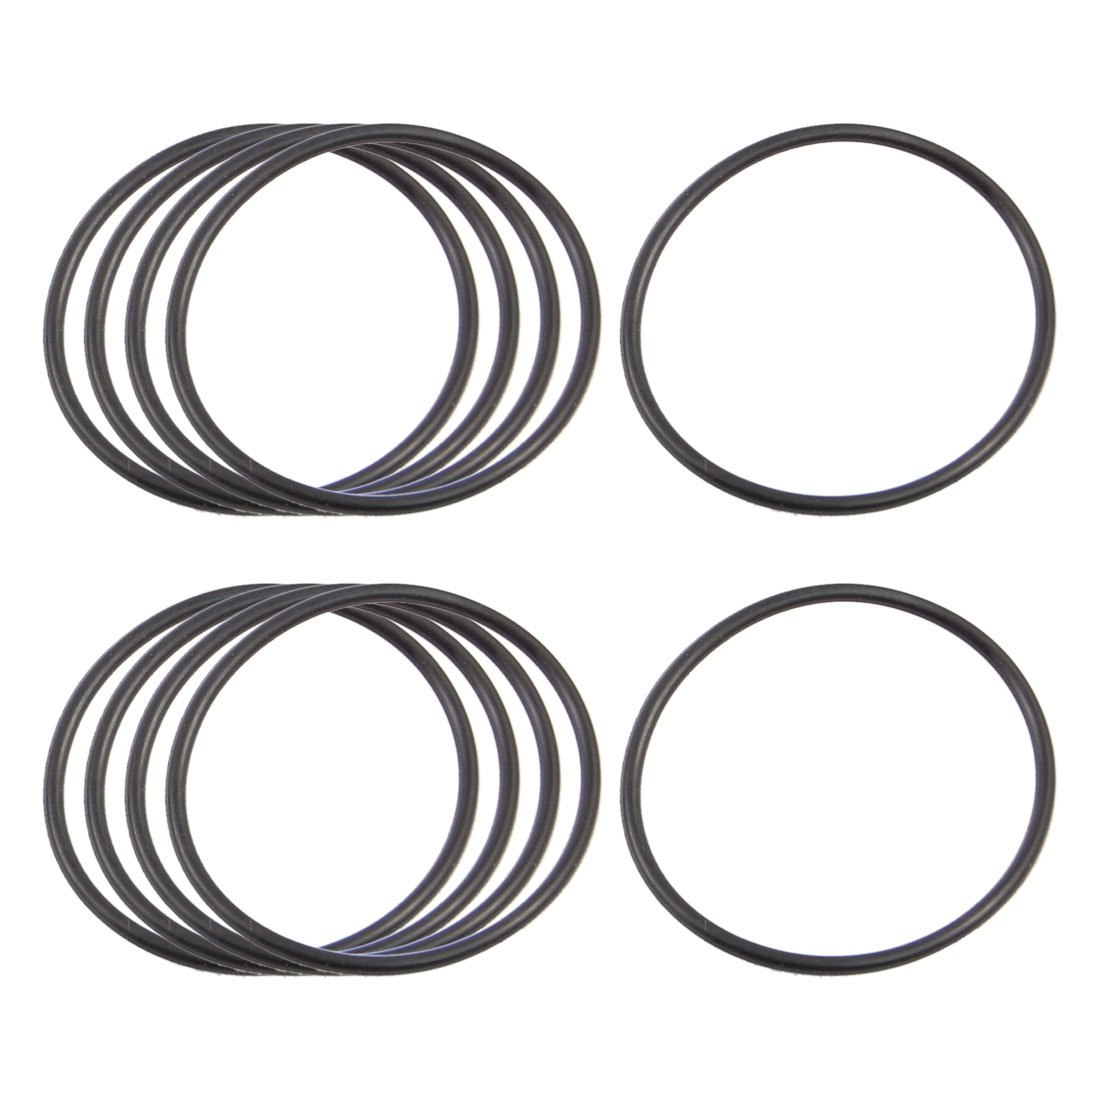 Amazon.com: uxcell 10 x Black Nitrile Rubber O Ring Grommets Seal ...